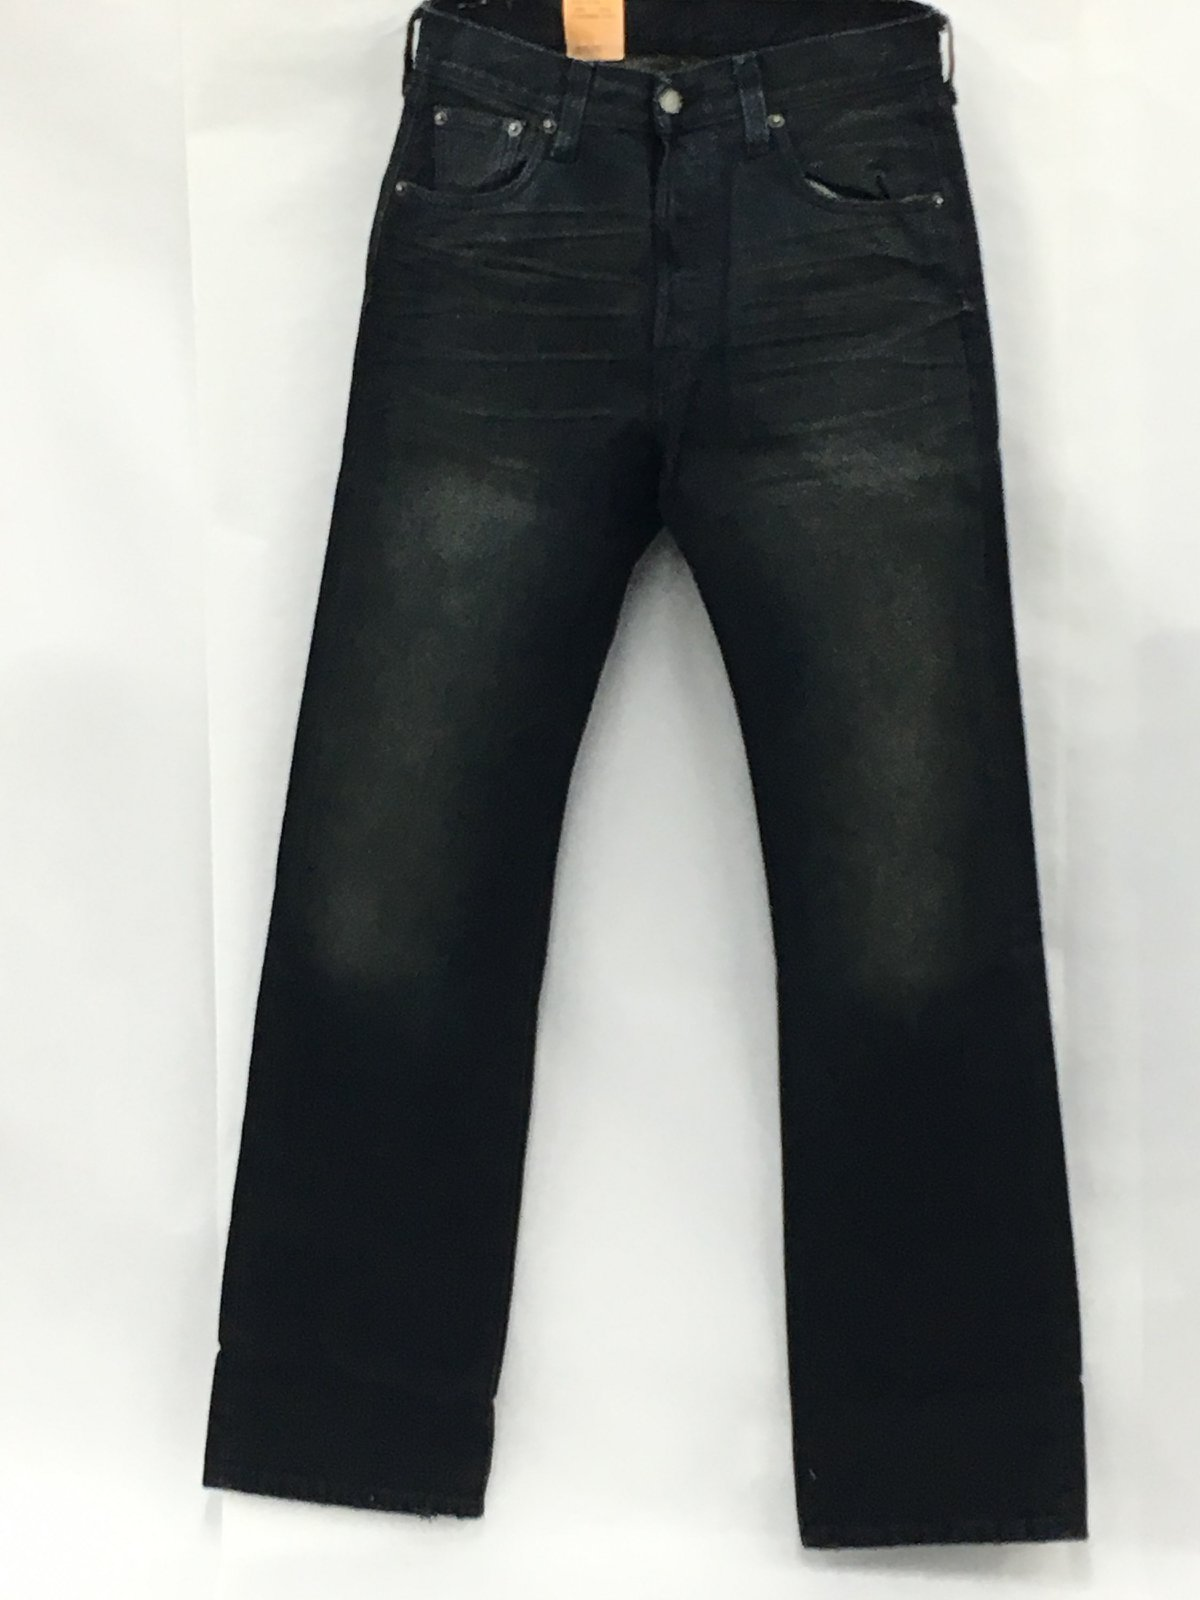 Levi's® 501® Original Jeans - Black Ditch